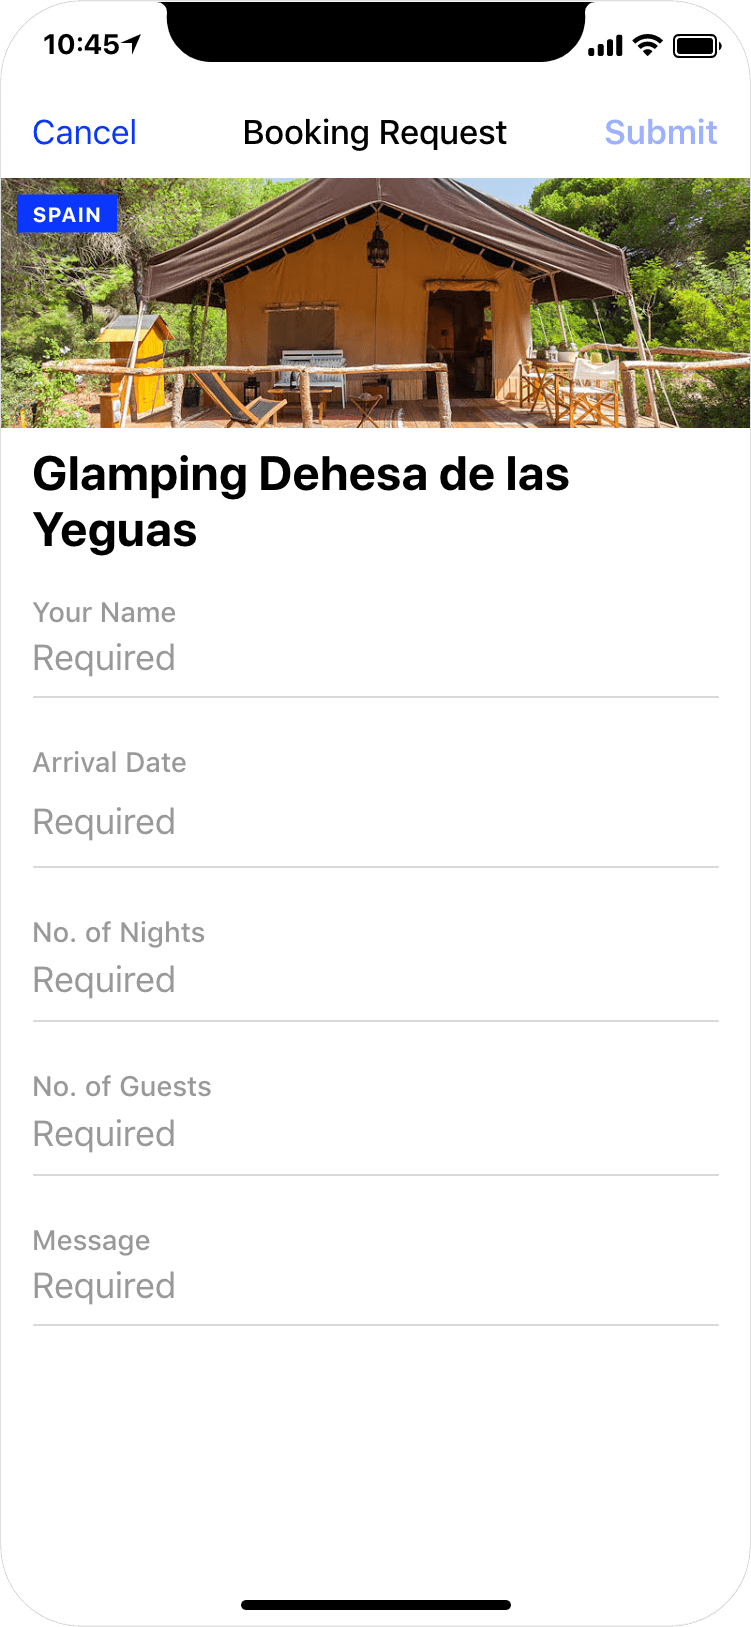 Glamping in Spain - booking request, app screenshot